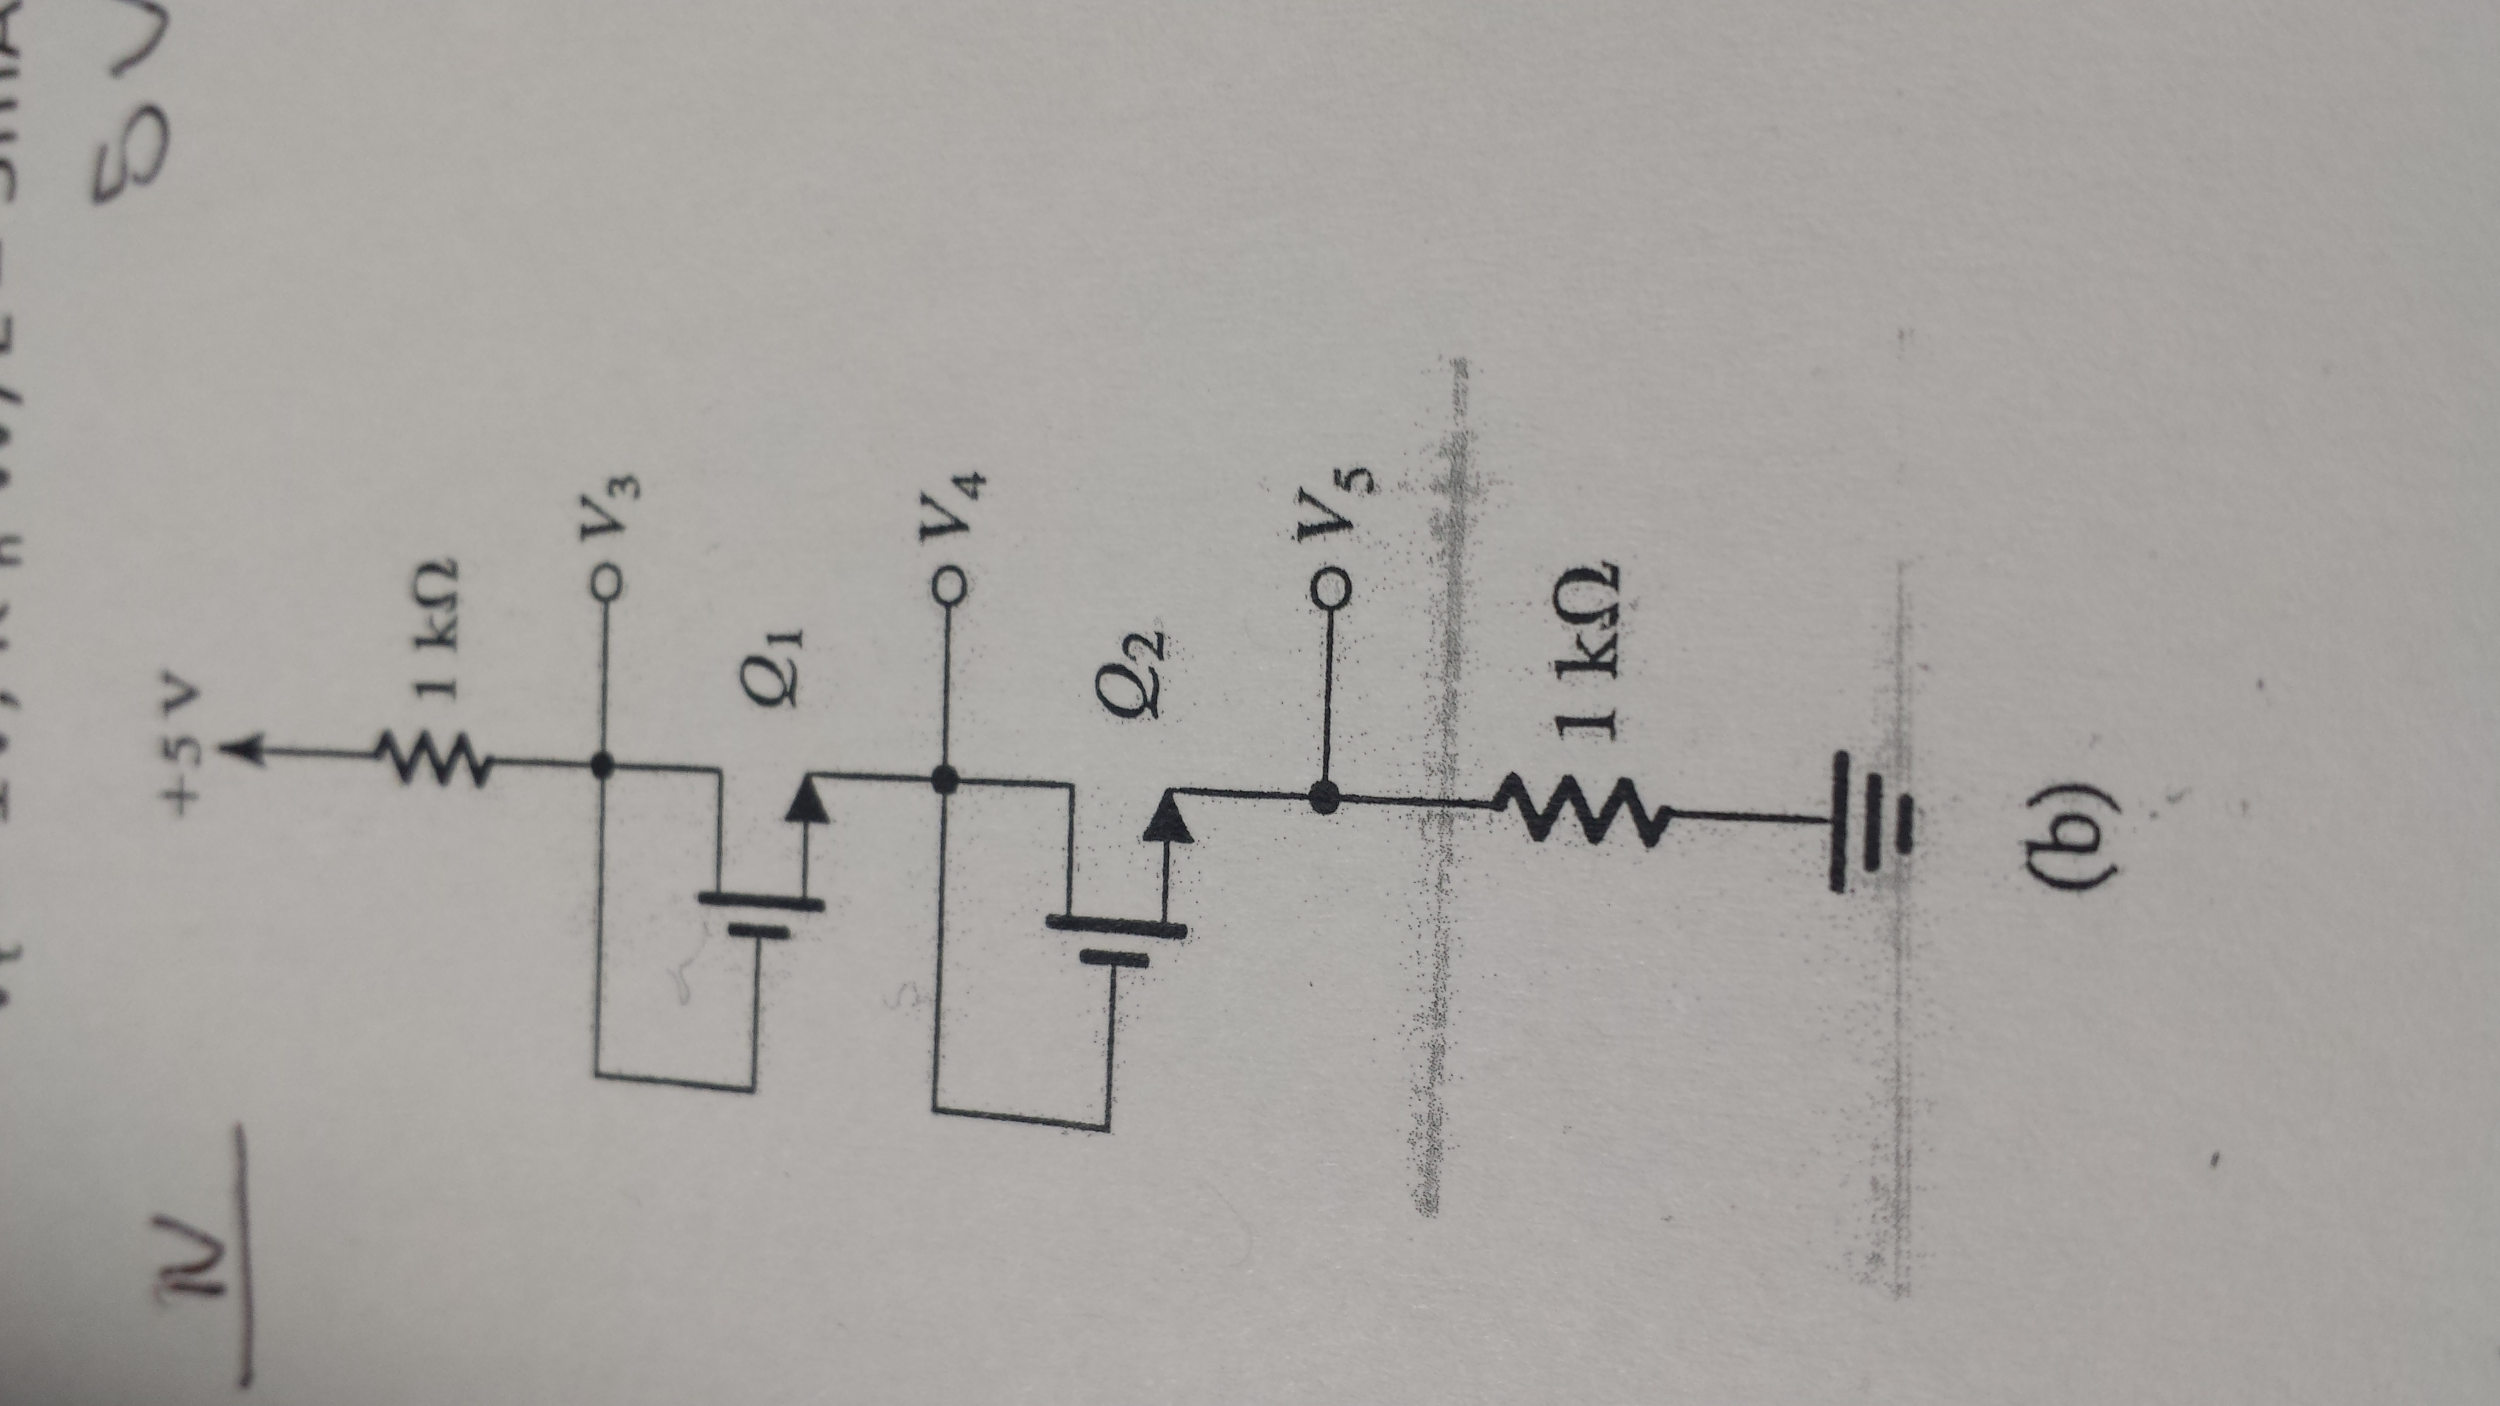 For the circuit below find the voltages V3, V4, V5